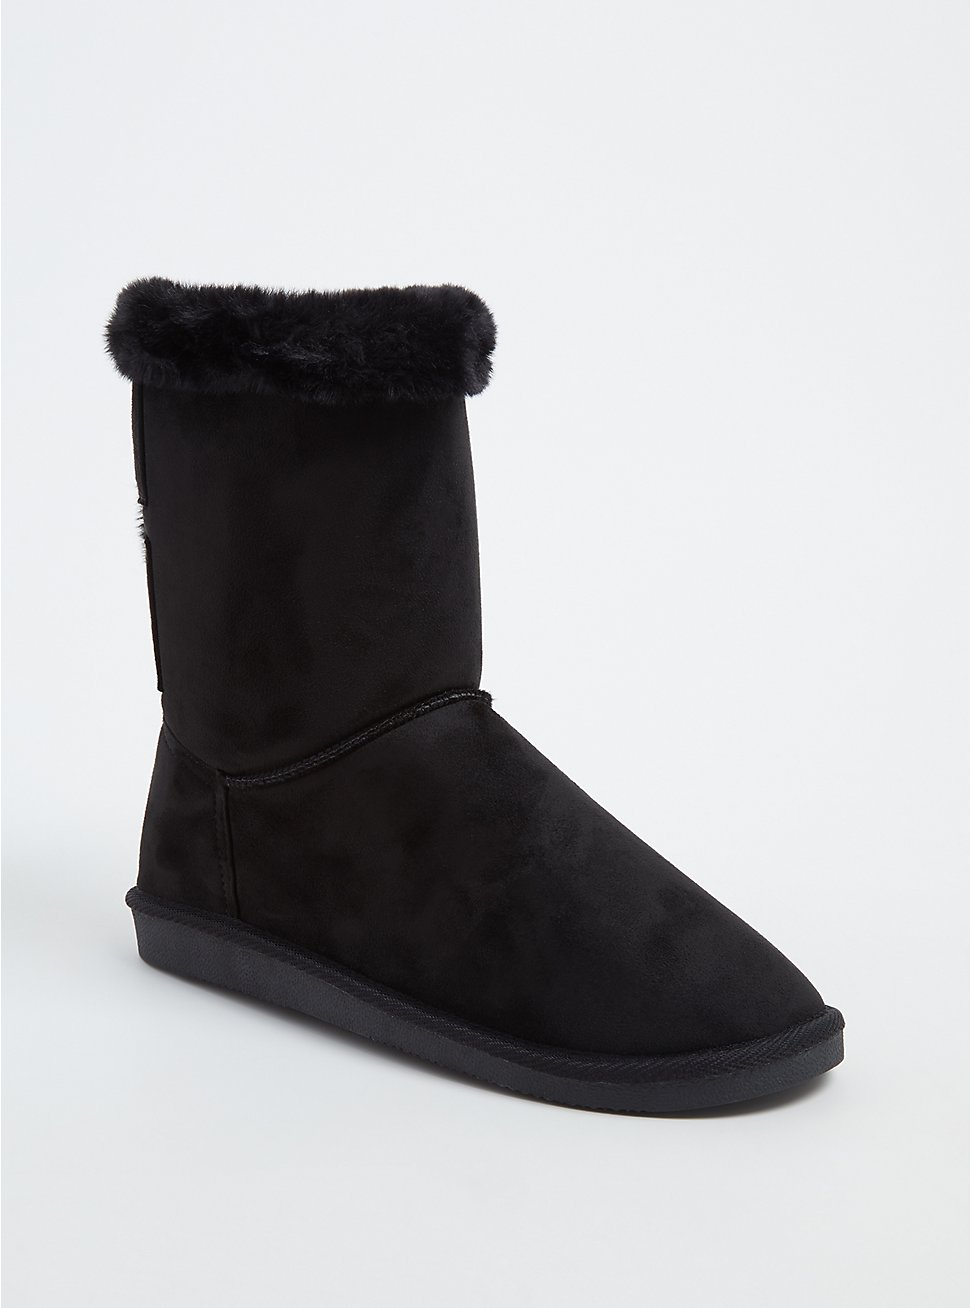 Black Faux Suede & Faux Fur Strappy Bootie (WW) , BLACK, hi-res